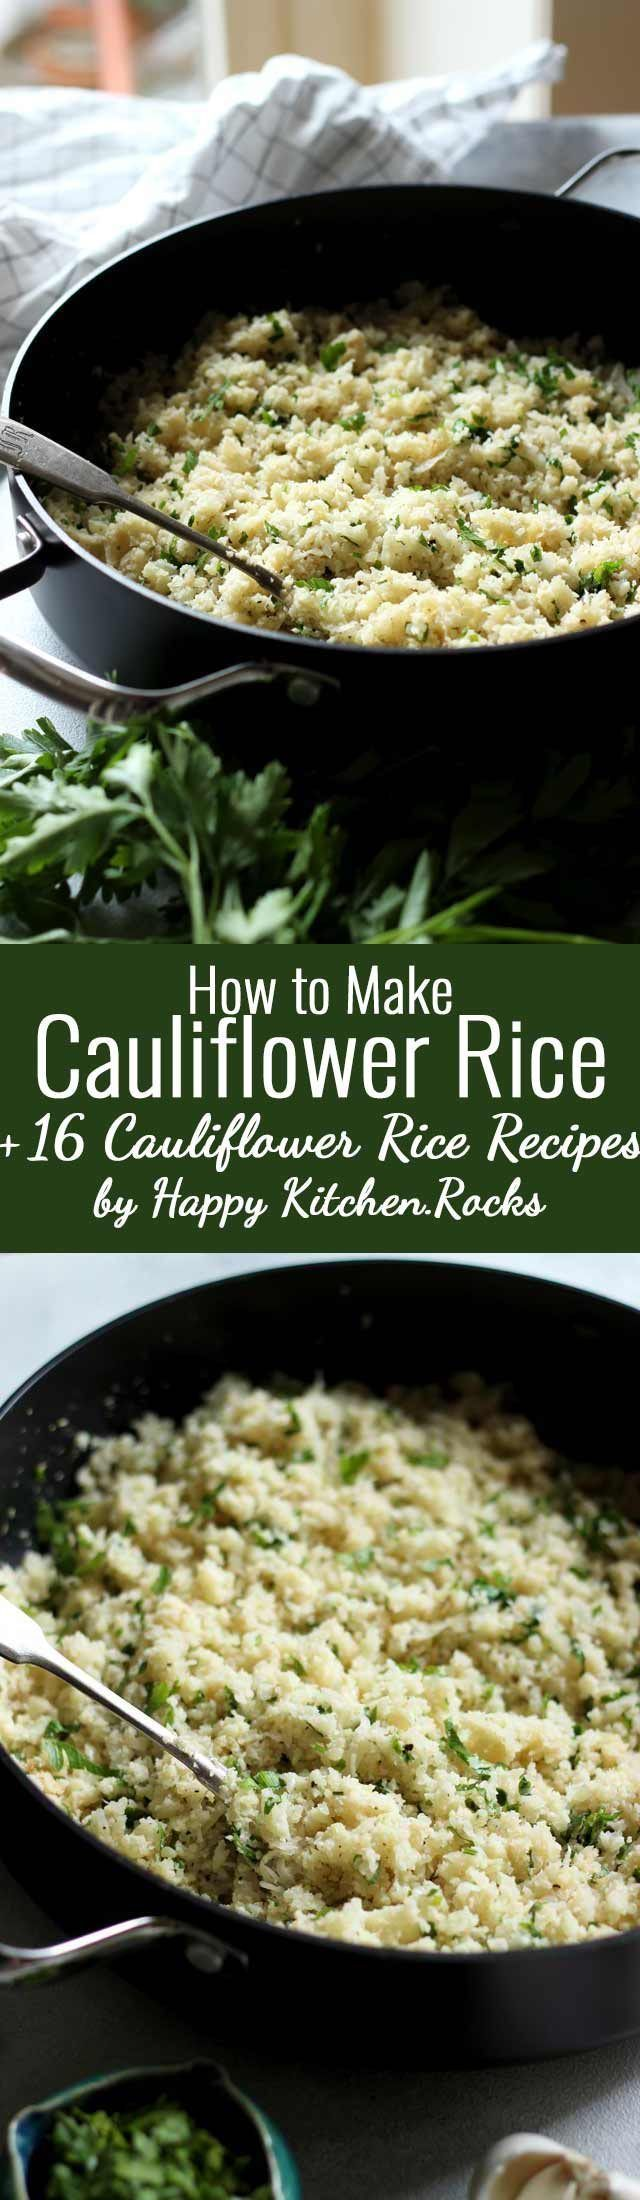 Light and fluffy basic Cauliflower Rice recipe used to make delicious gluten-free and low carb sides, risotto, fried rice, salads, soups, burrito bowls, sushi and more! Step-by-step video guide on how to make cauliflower rice using a box grater plus 12 recipes that include cauliflower rice. #lowcarb #glutenfree #recipes #healthyrecipes #vegan #veganrecipes #healthyveganrecipes #cleaneating #food #vegetarianrecipes